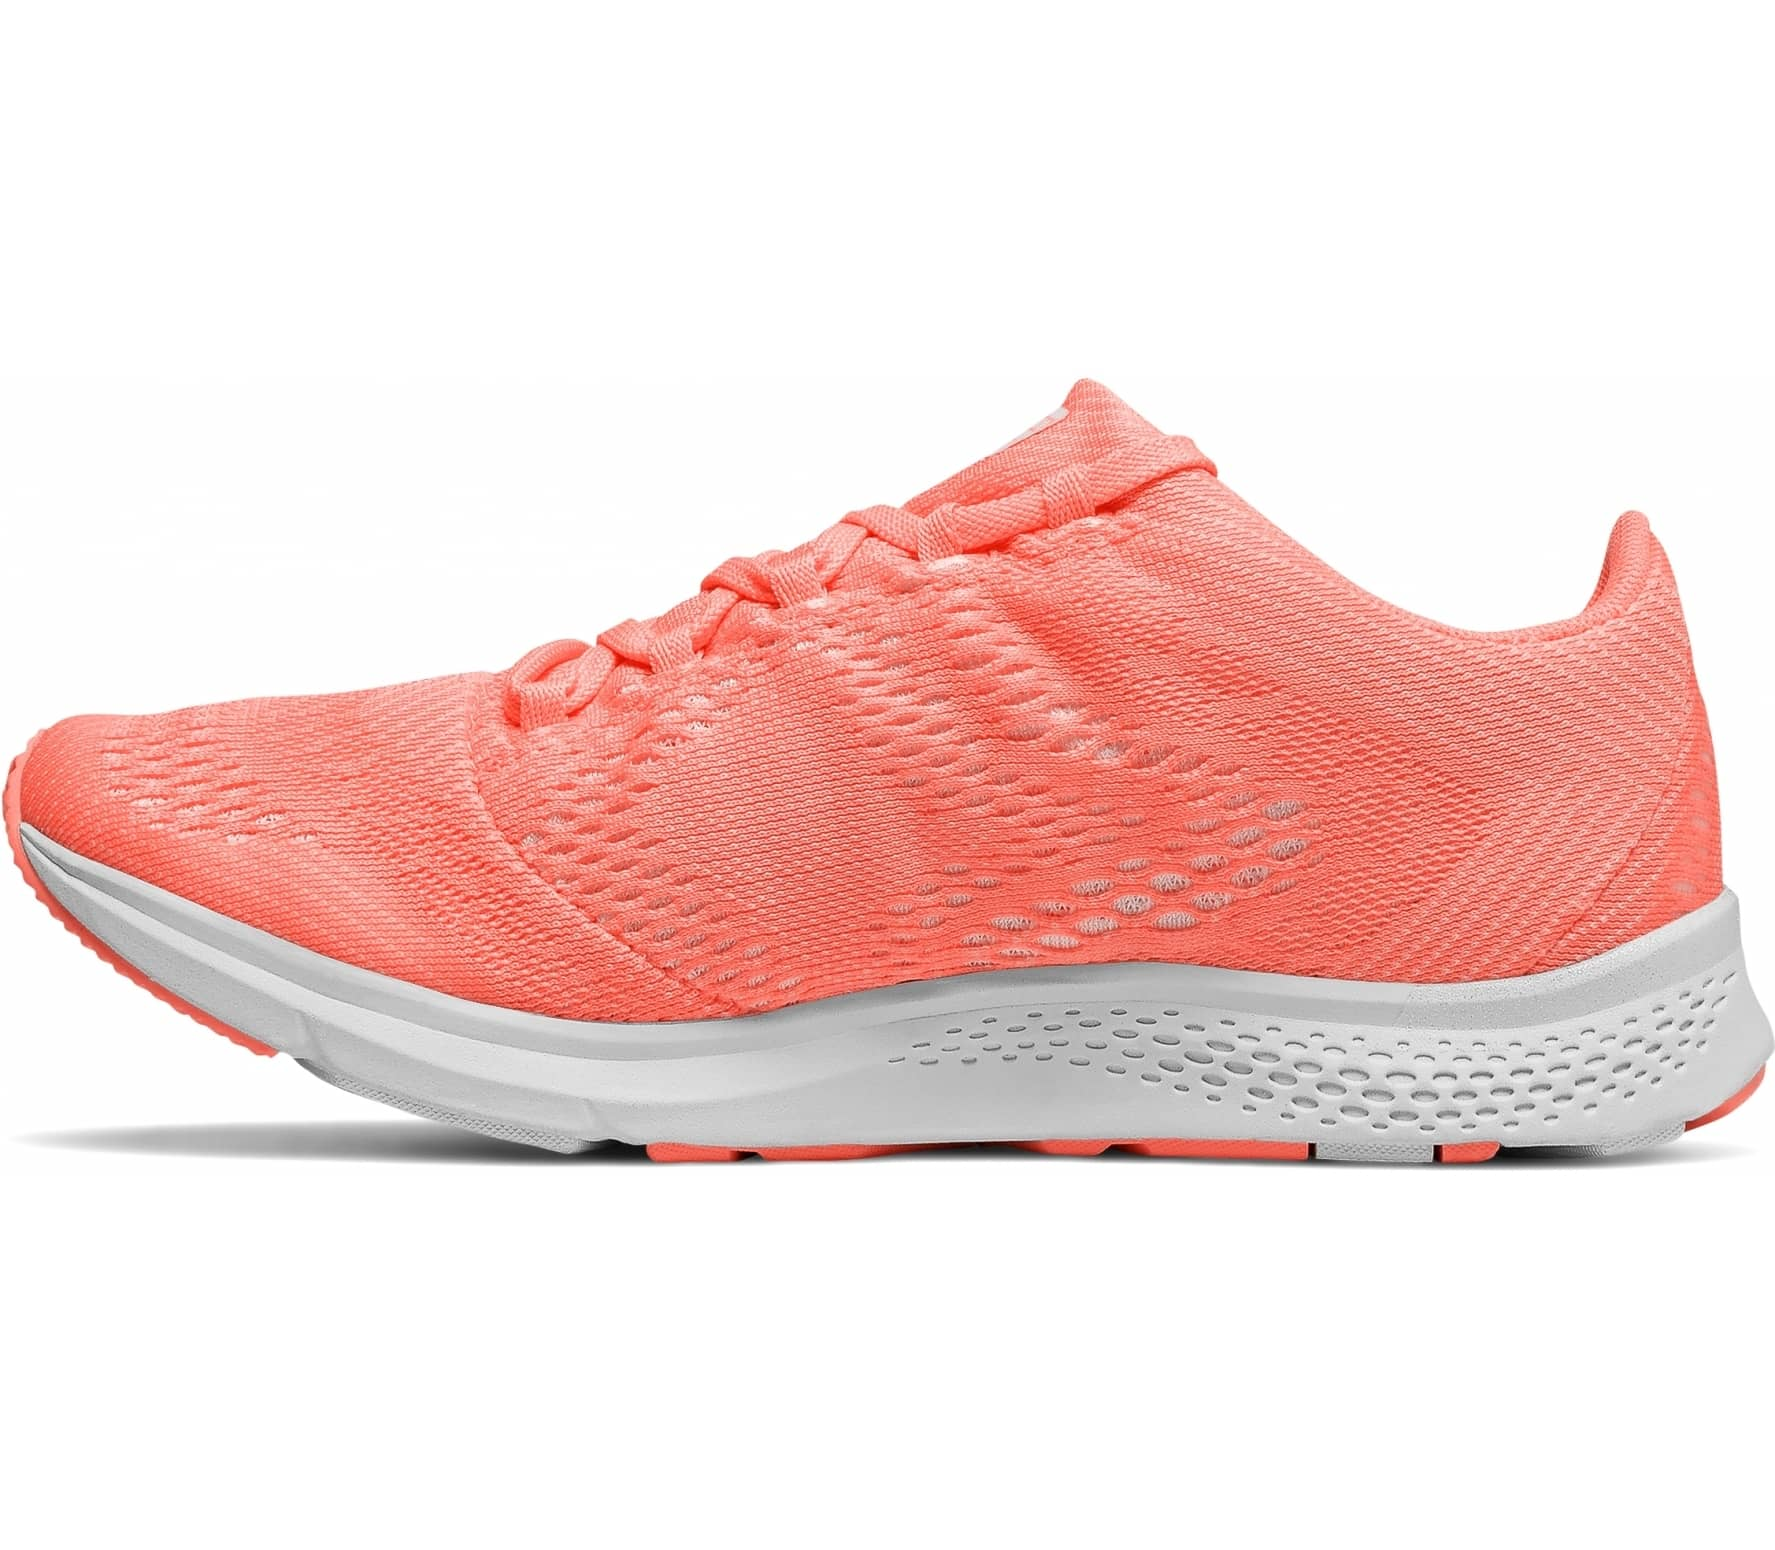 New Balance - Agility Femmes Chaussure d' rose